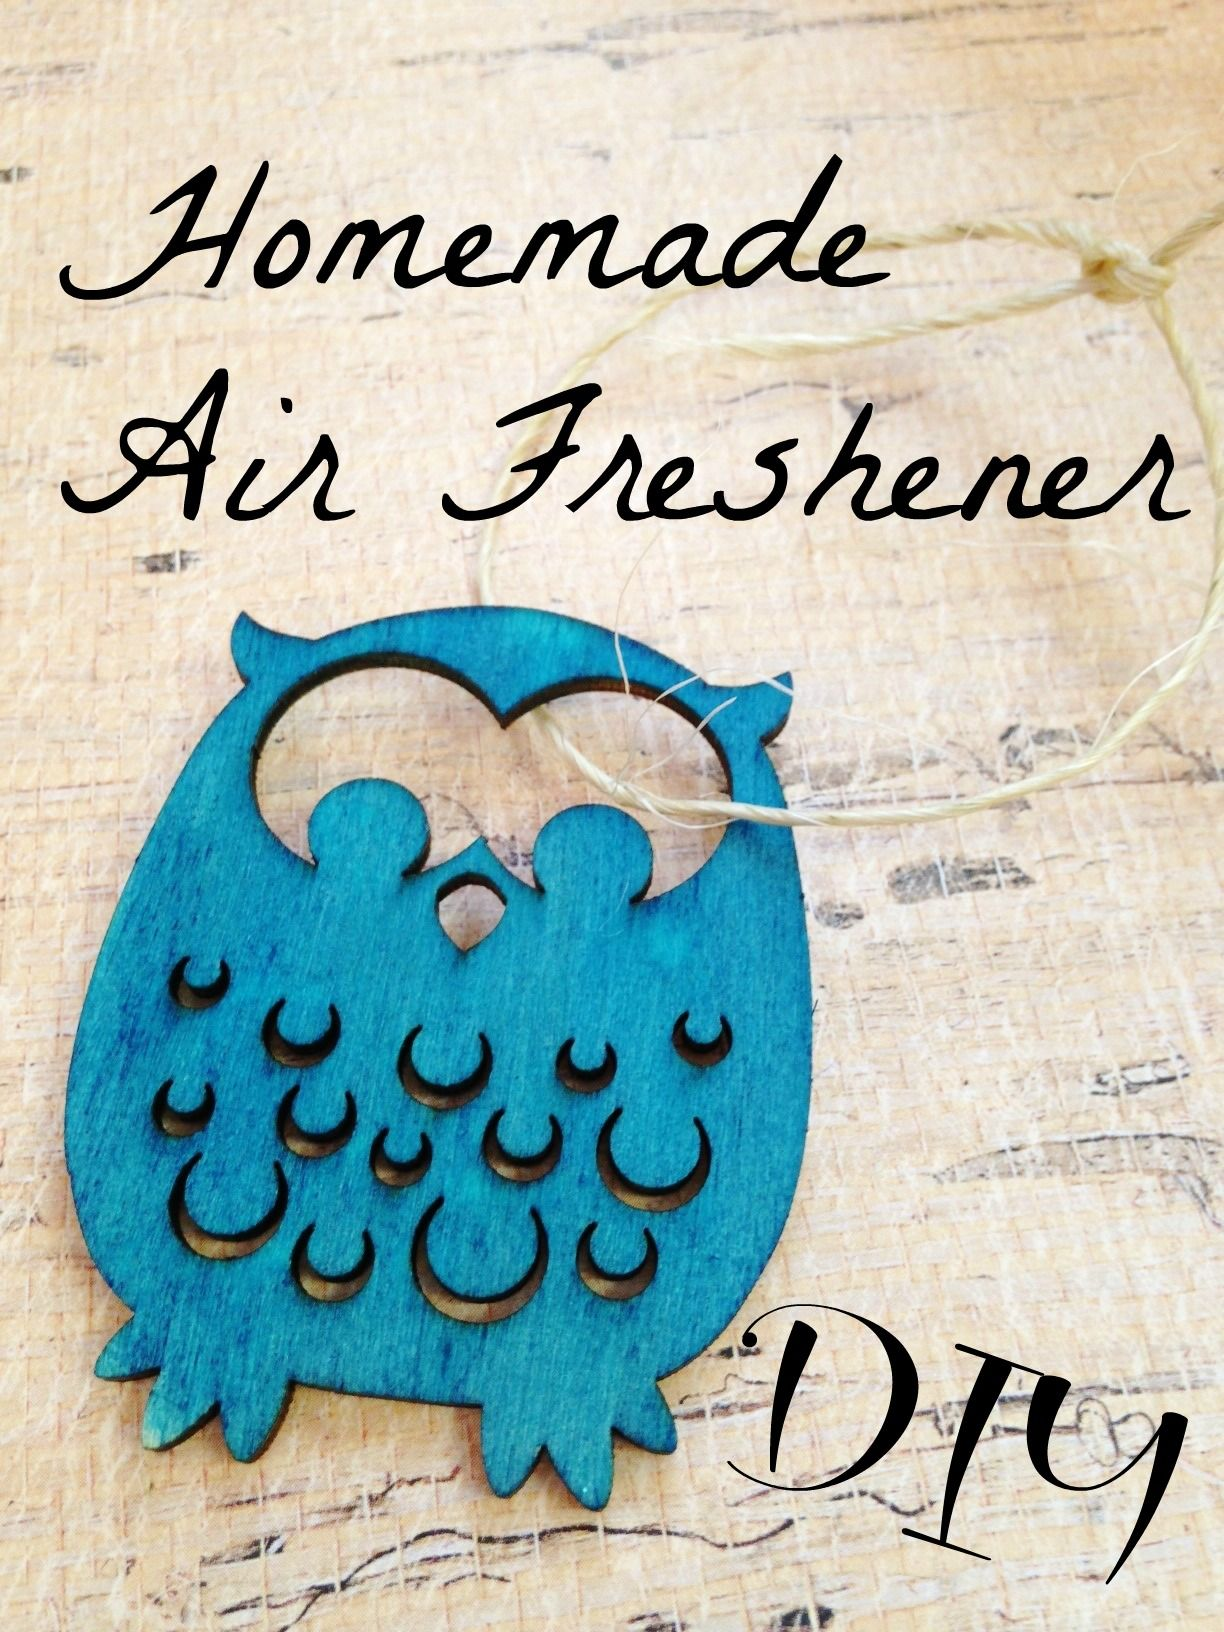 Diy air freshener great gift addition for the holidays